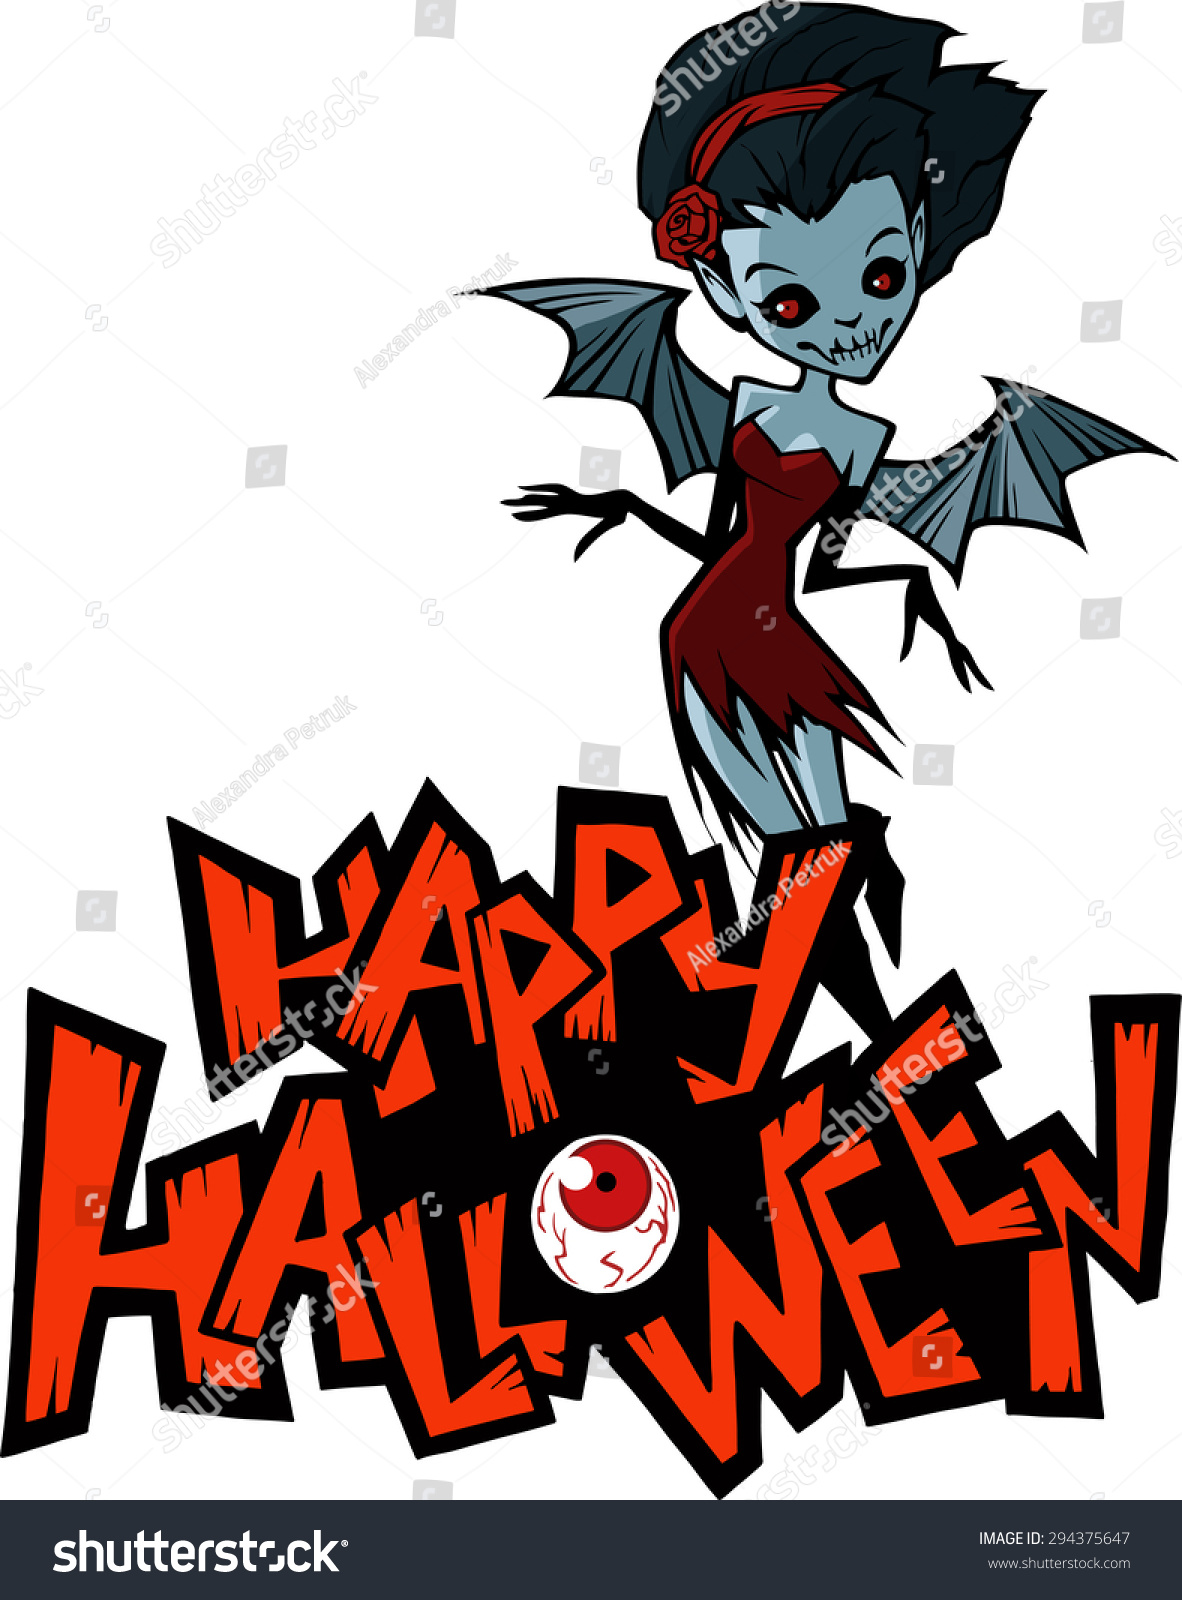 Halloween Cartoon Illustration Of A Vampire Lady With Bat Wings